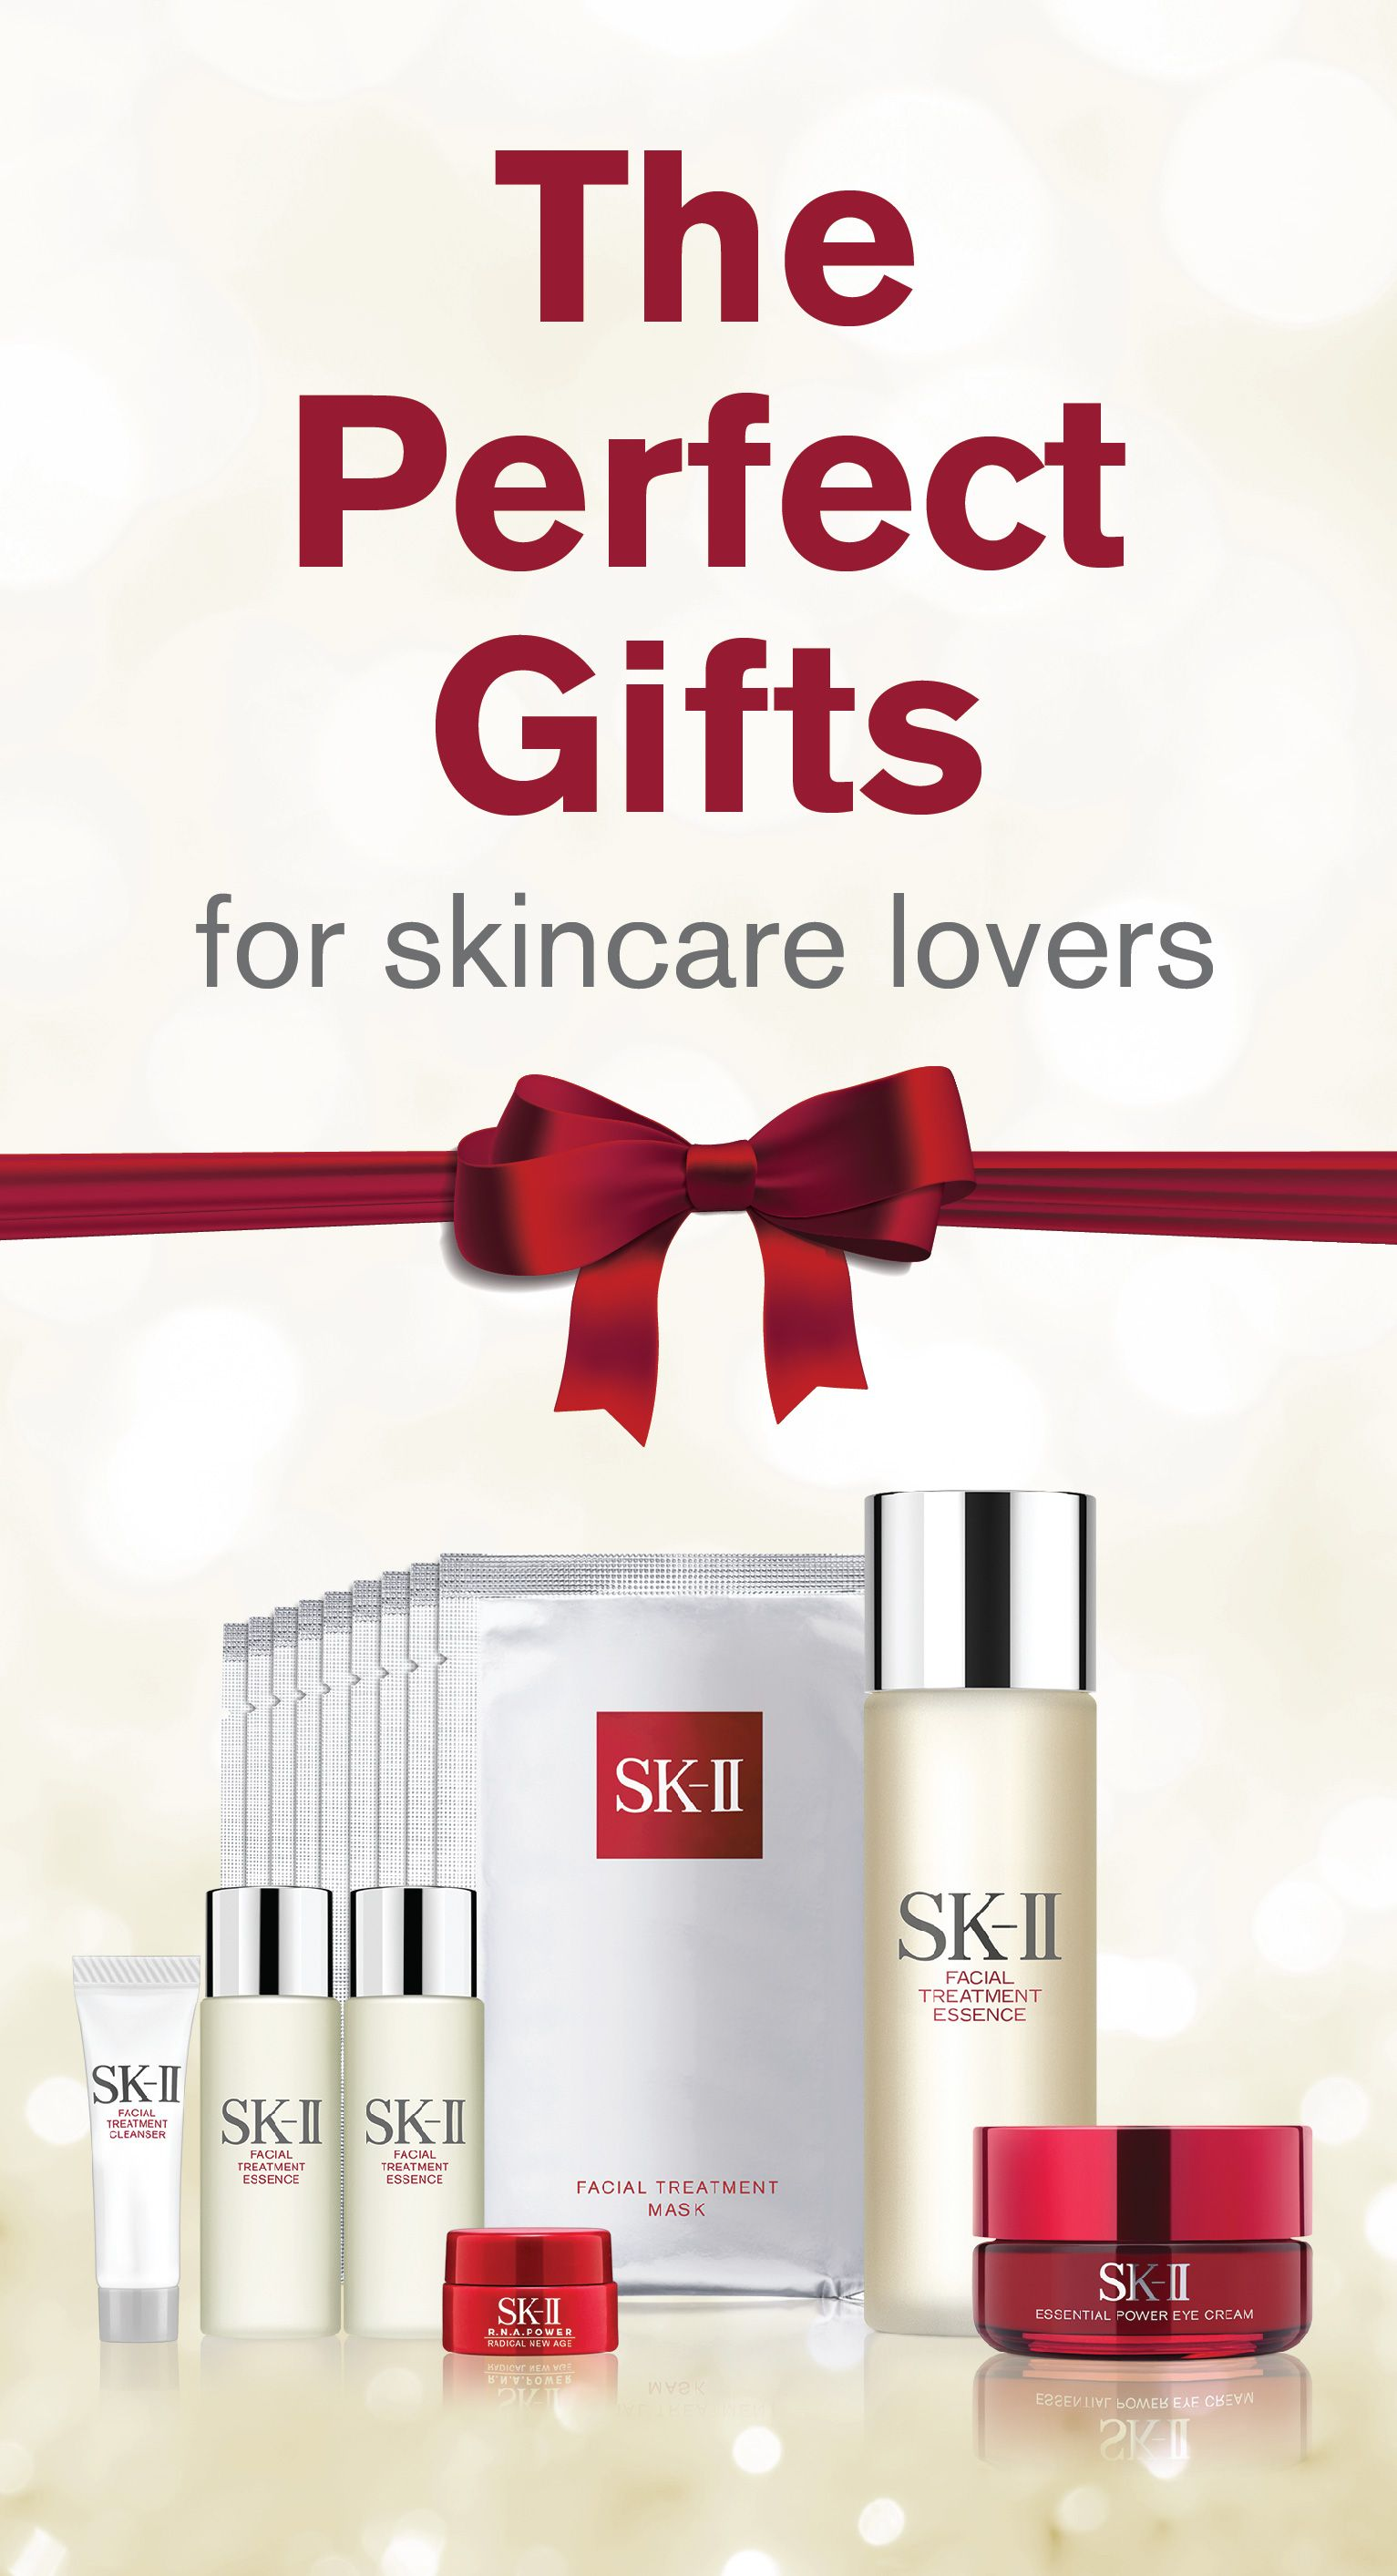 The perfect gift is just a click away! Share the gift of Pitera™ this holiday and get the best value on SK-II gift sets.